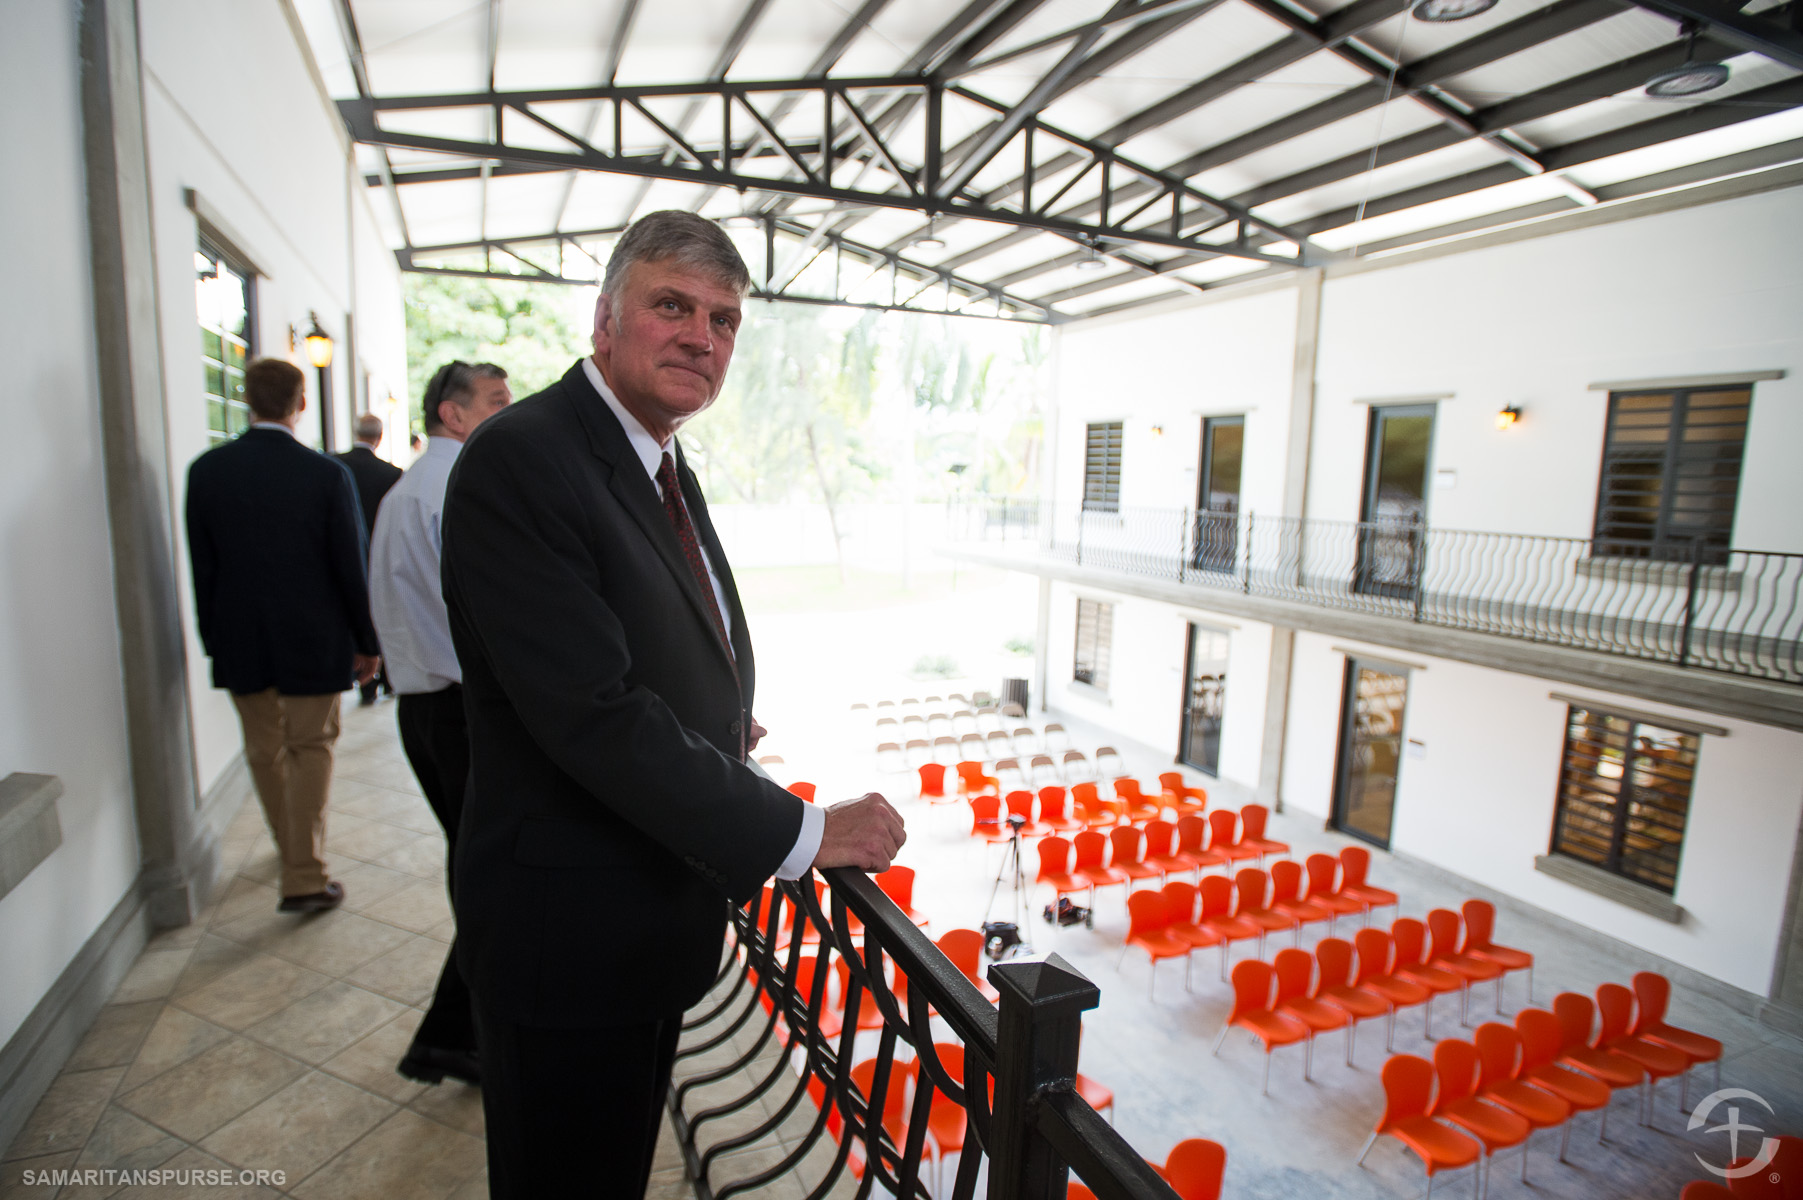 Franklin Graham toured the facility just before the dedication ceremony.